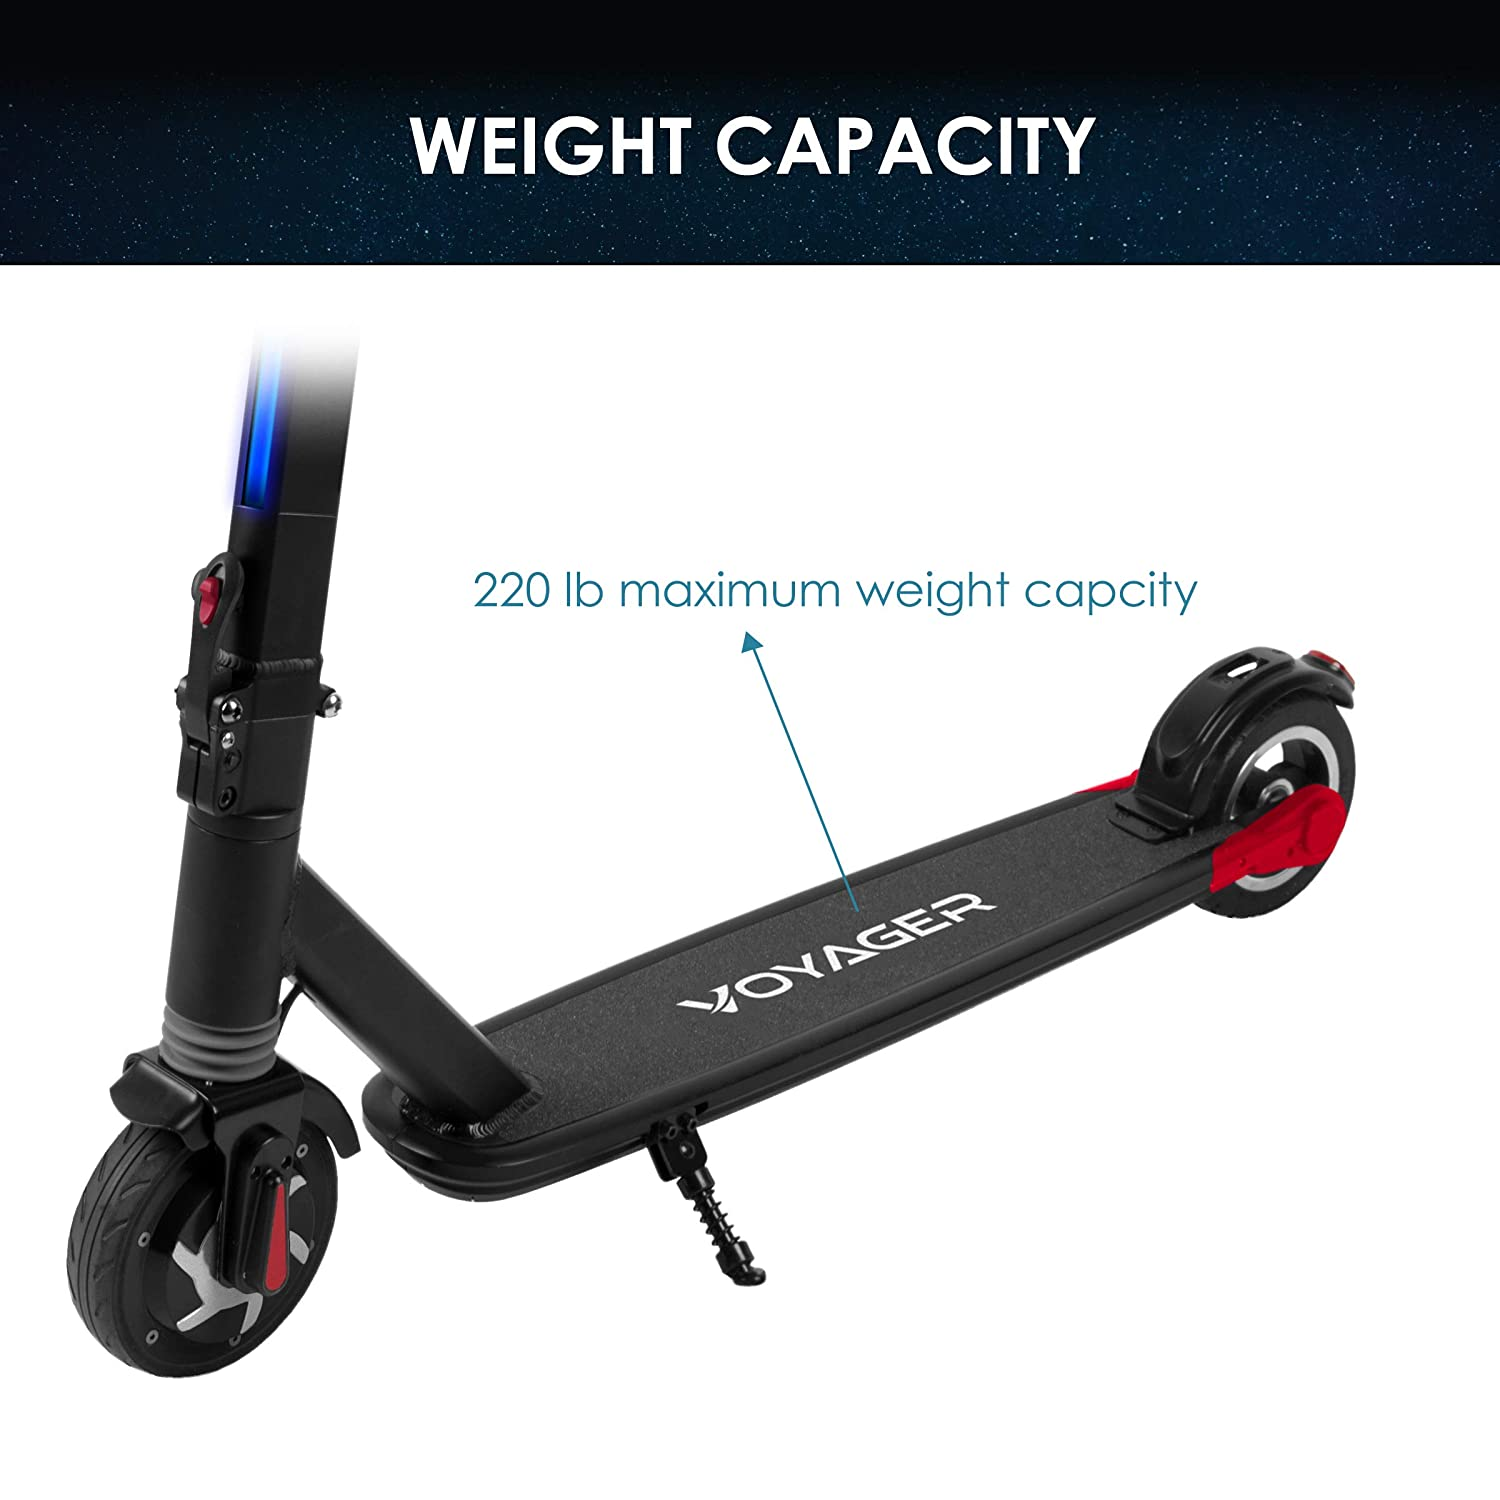 Voyager Proton Foldable Electric Scooter with LCD Display, LED Headlight and Light Strip, 15 MPH Max Speed, Long Range Battery up to 6 Miles